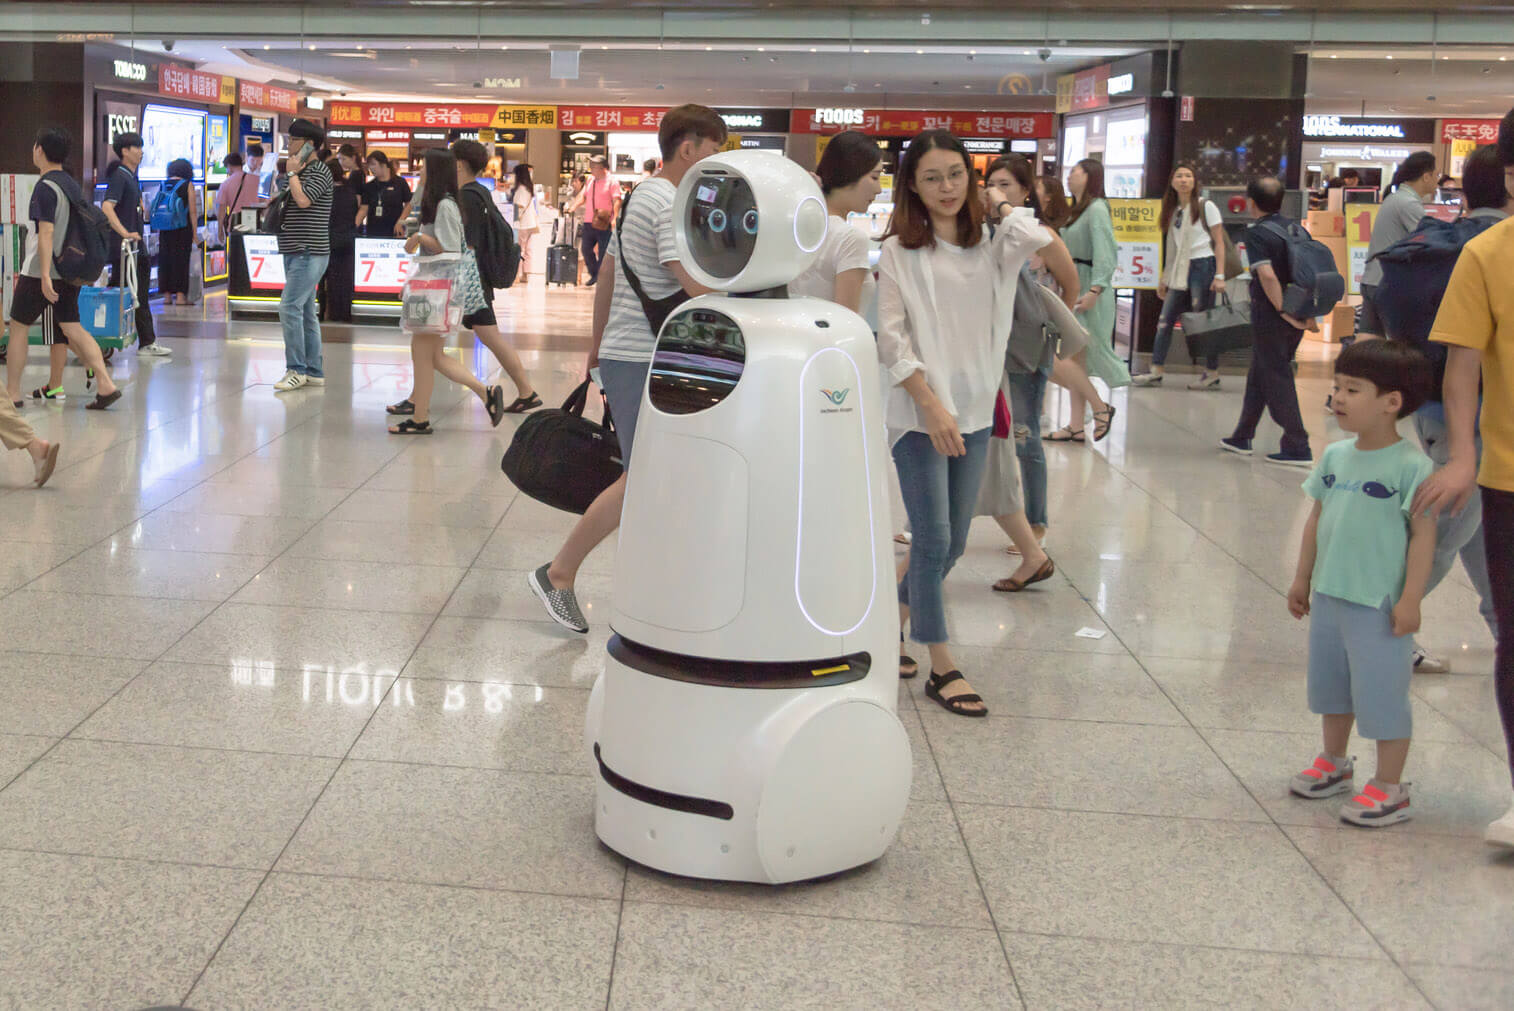 A retail robot roams in a crowded mall